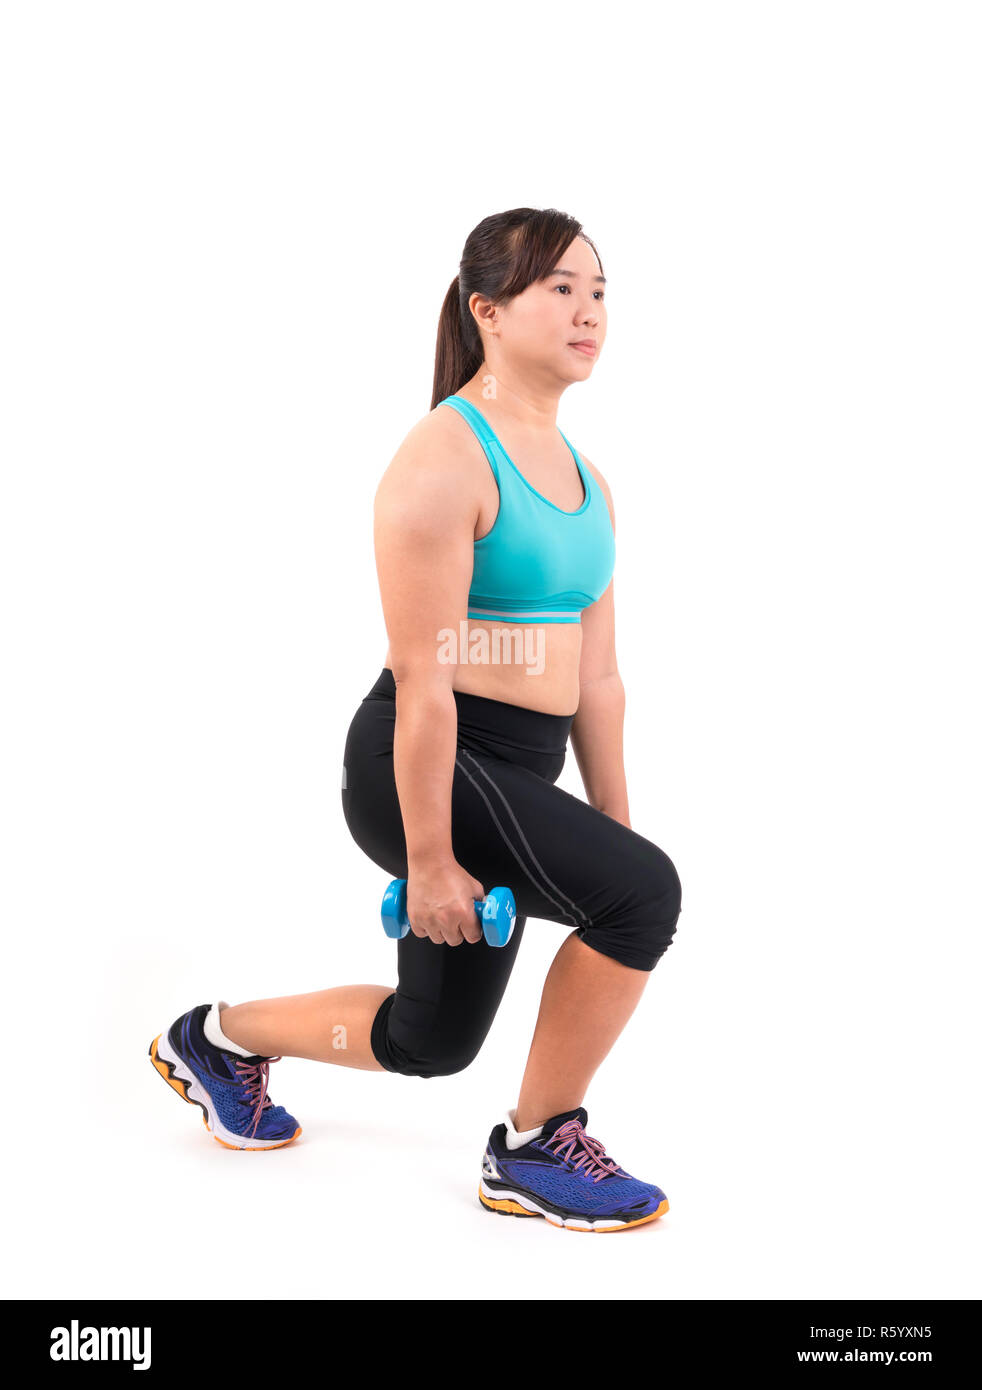 1da26c62aab5b Overweight Woman Exercise Asian Stock Photos   Overweight Woman ...